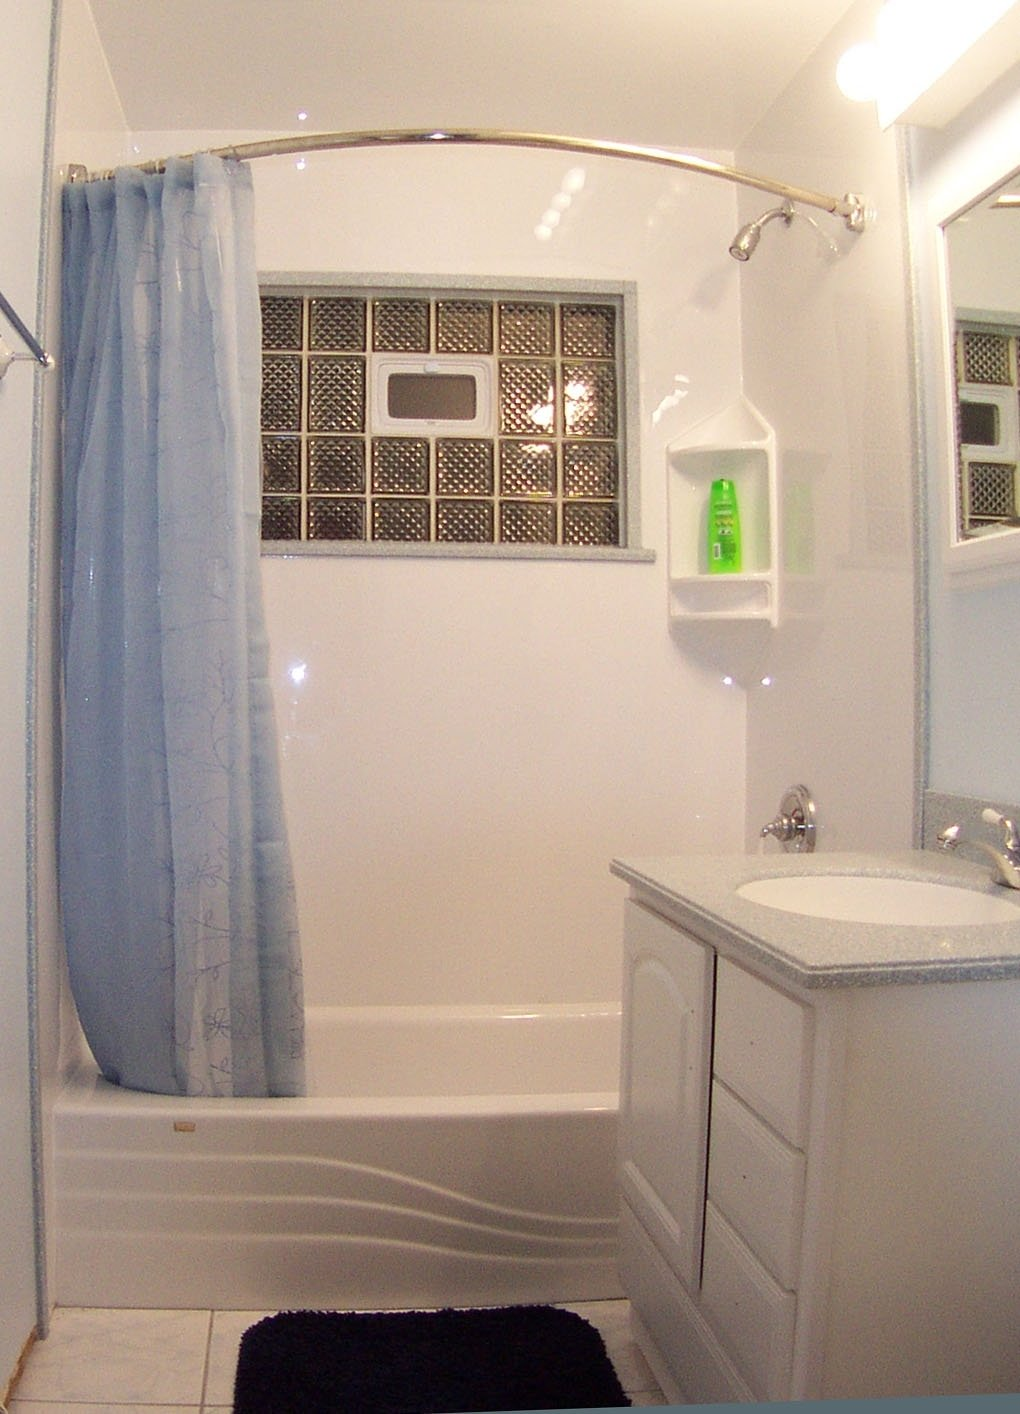 10 Fantastic Ideas For Remodeling A Small Bathroom unique small bathroom remodel ideas pictures for resident design